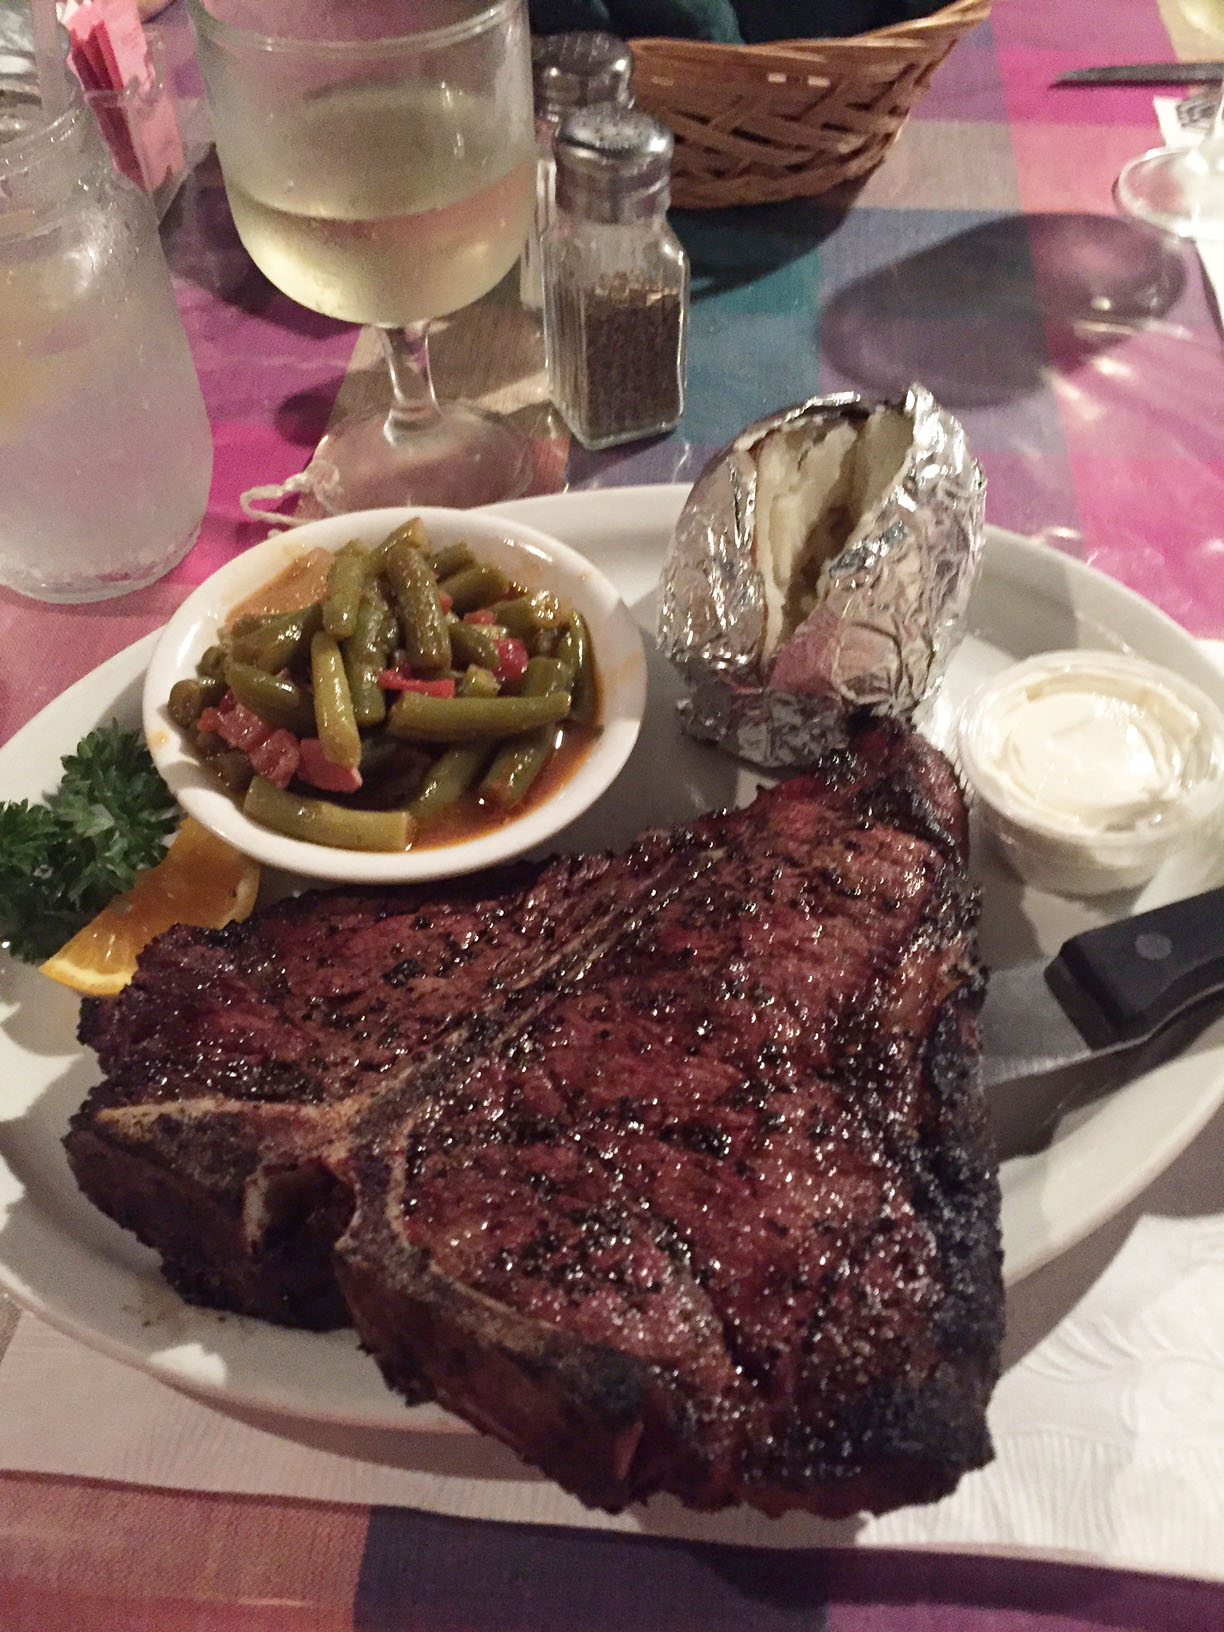 The 23oz. Porterhouse at the Rare Steer Steakhouse